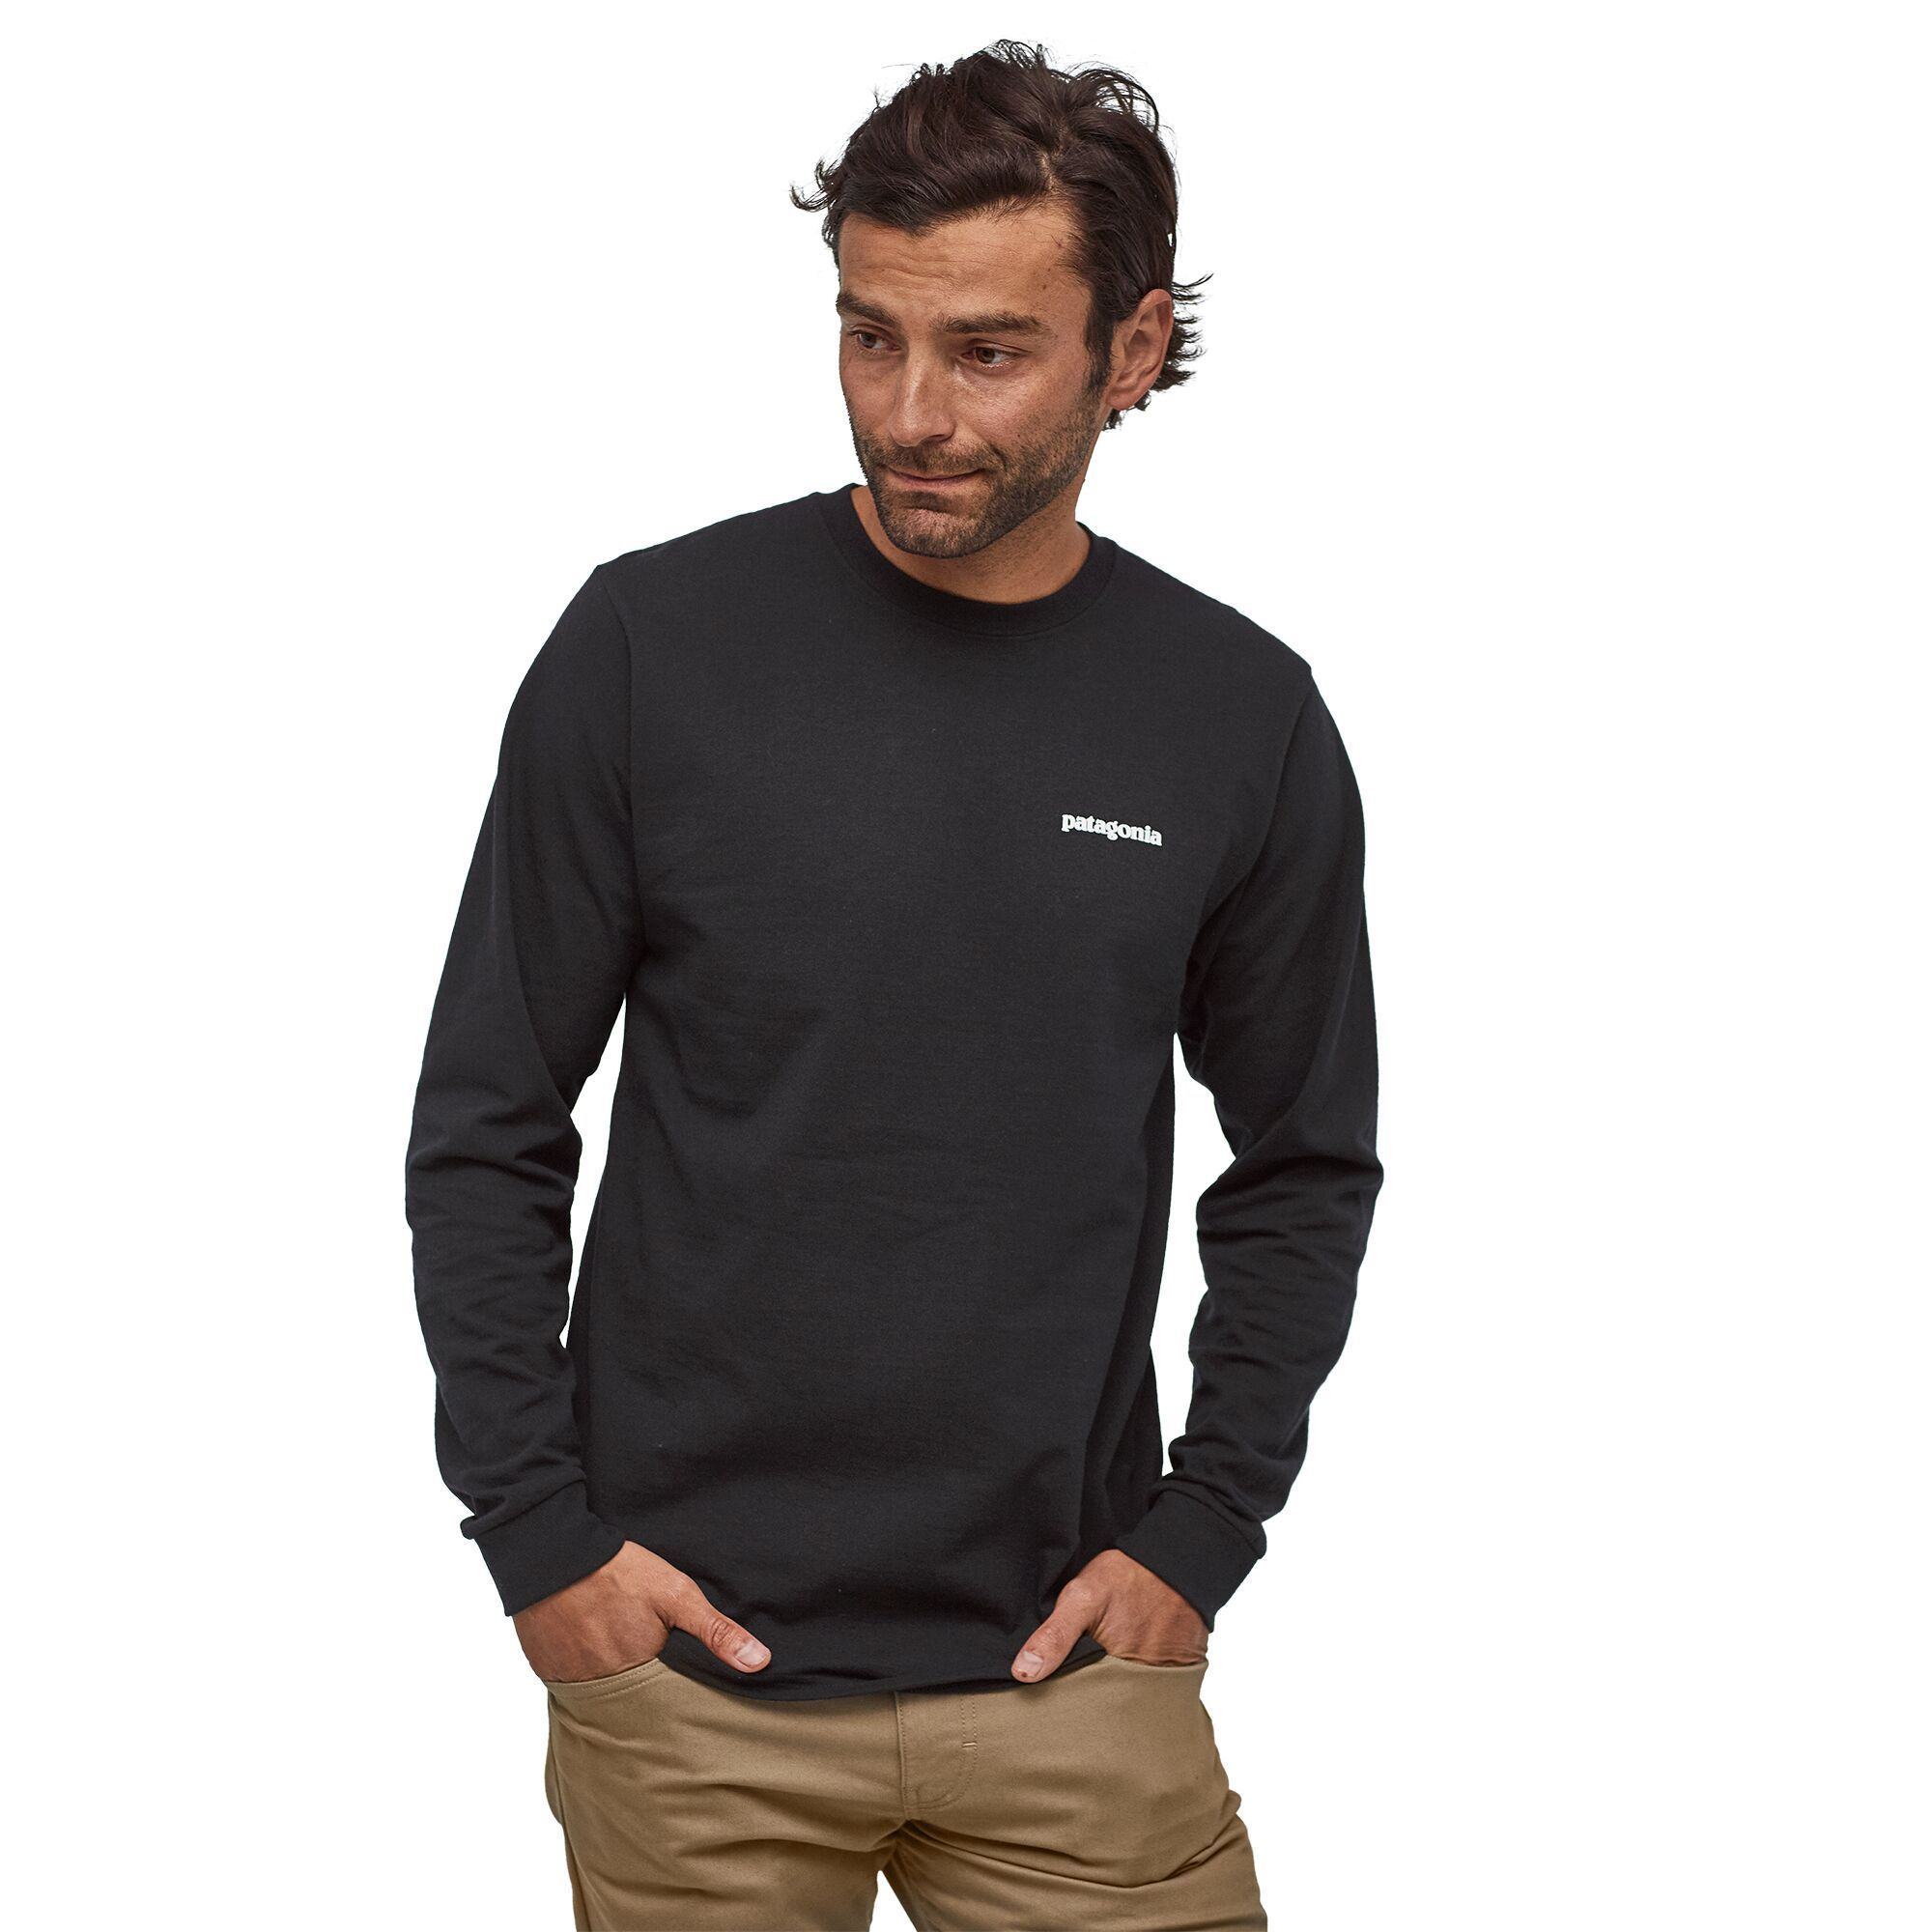 Patagonia - M's Long-Sleeved P-6 Logo Responsibili-Tee® - Recycled Polyester - Weekendbee - sustainable sportswear